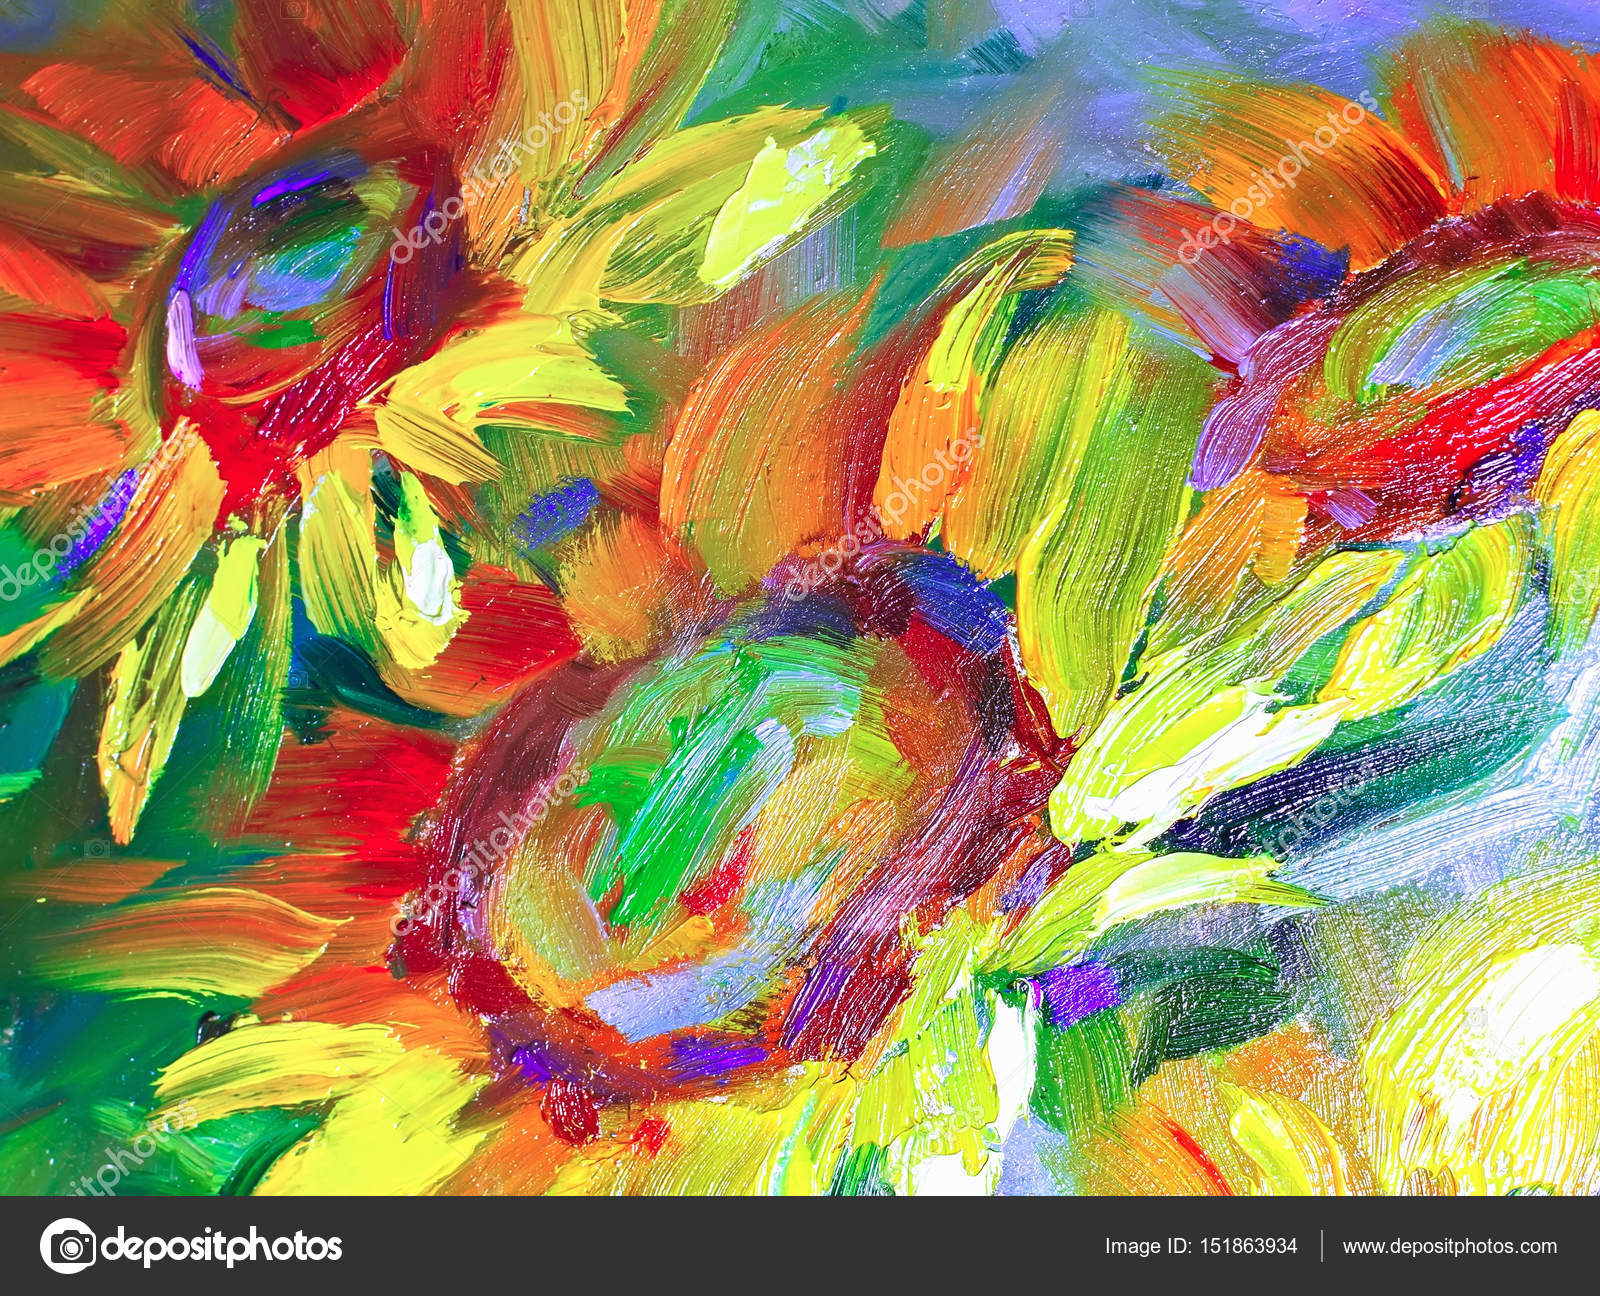 Pictures Easy Paintings Of Nature Texture Oil Painting